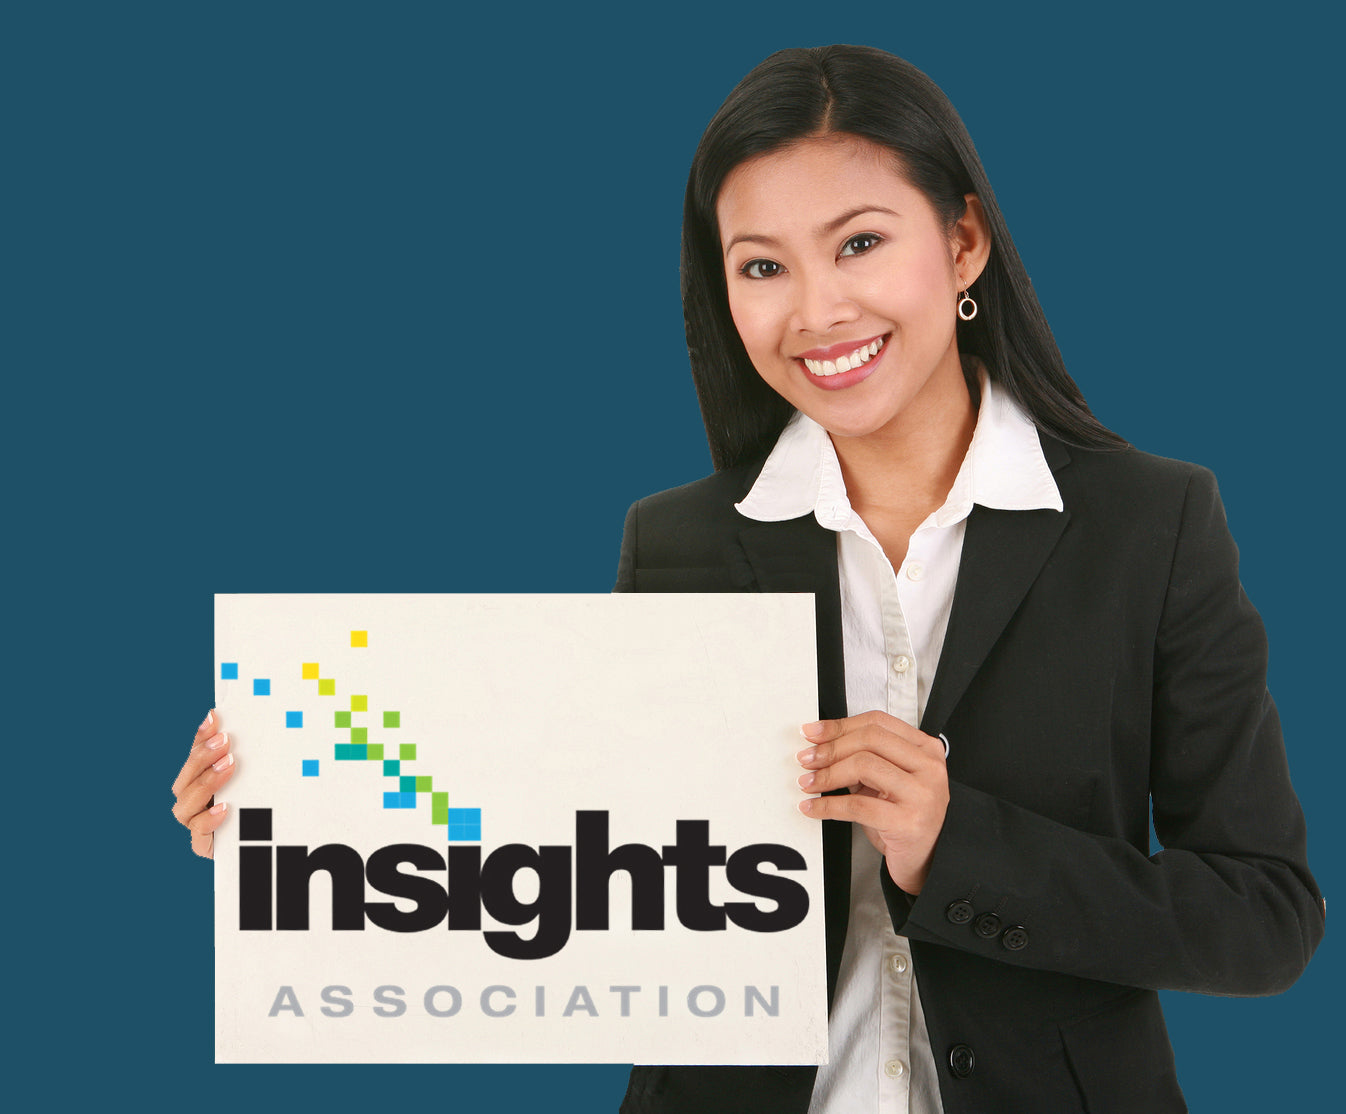 Insights Association Certificates